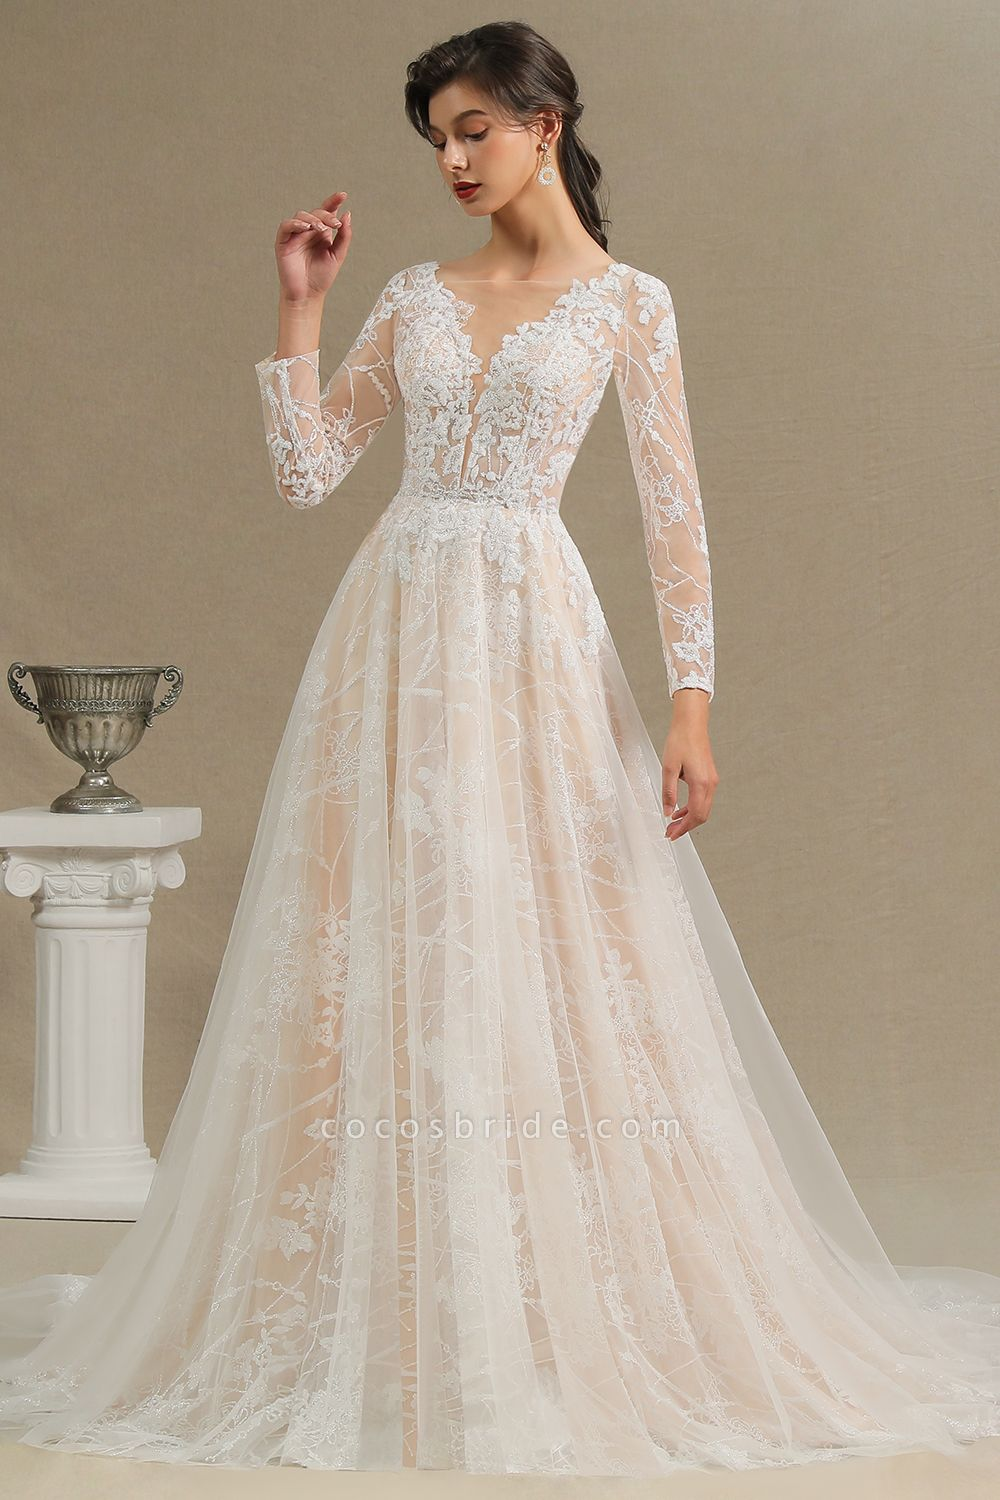 Amazing Long Sleeve Rulle Tulle A-line Wedding Dress